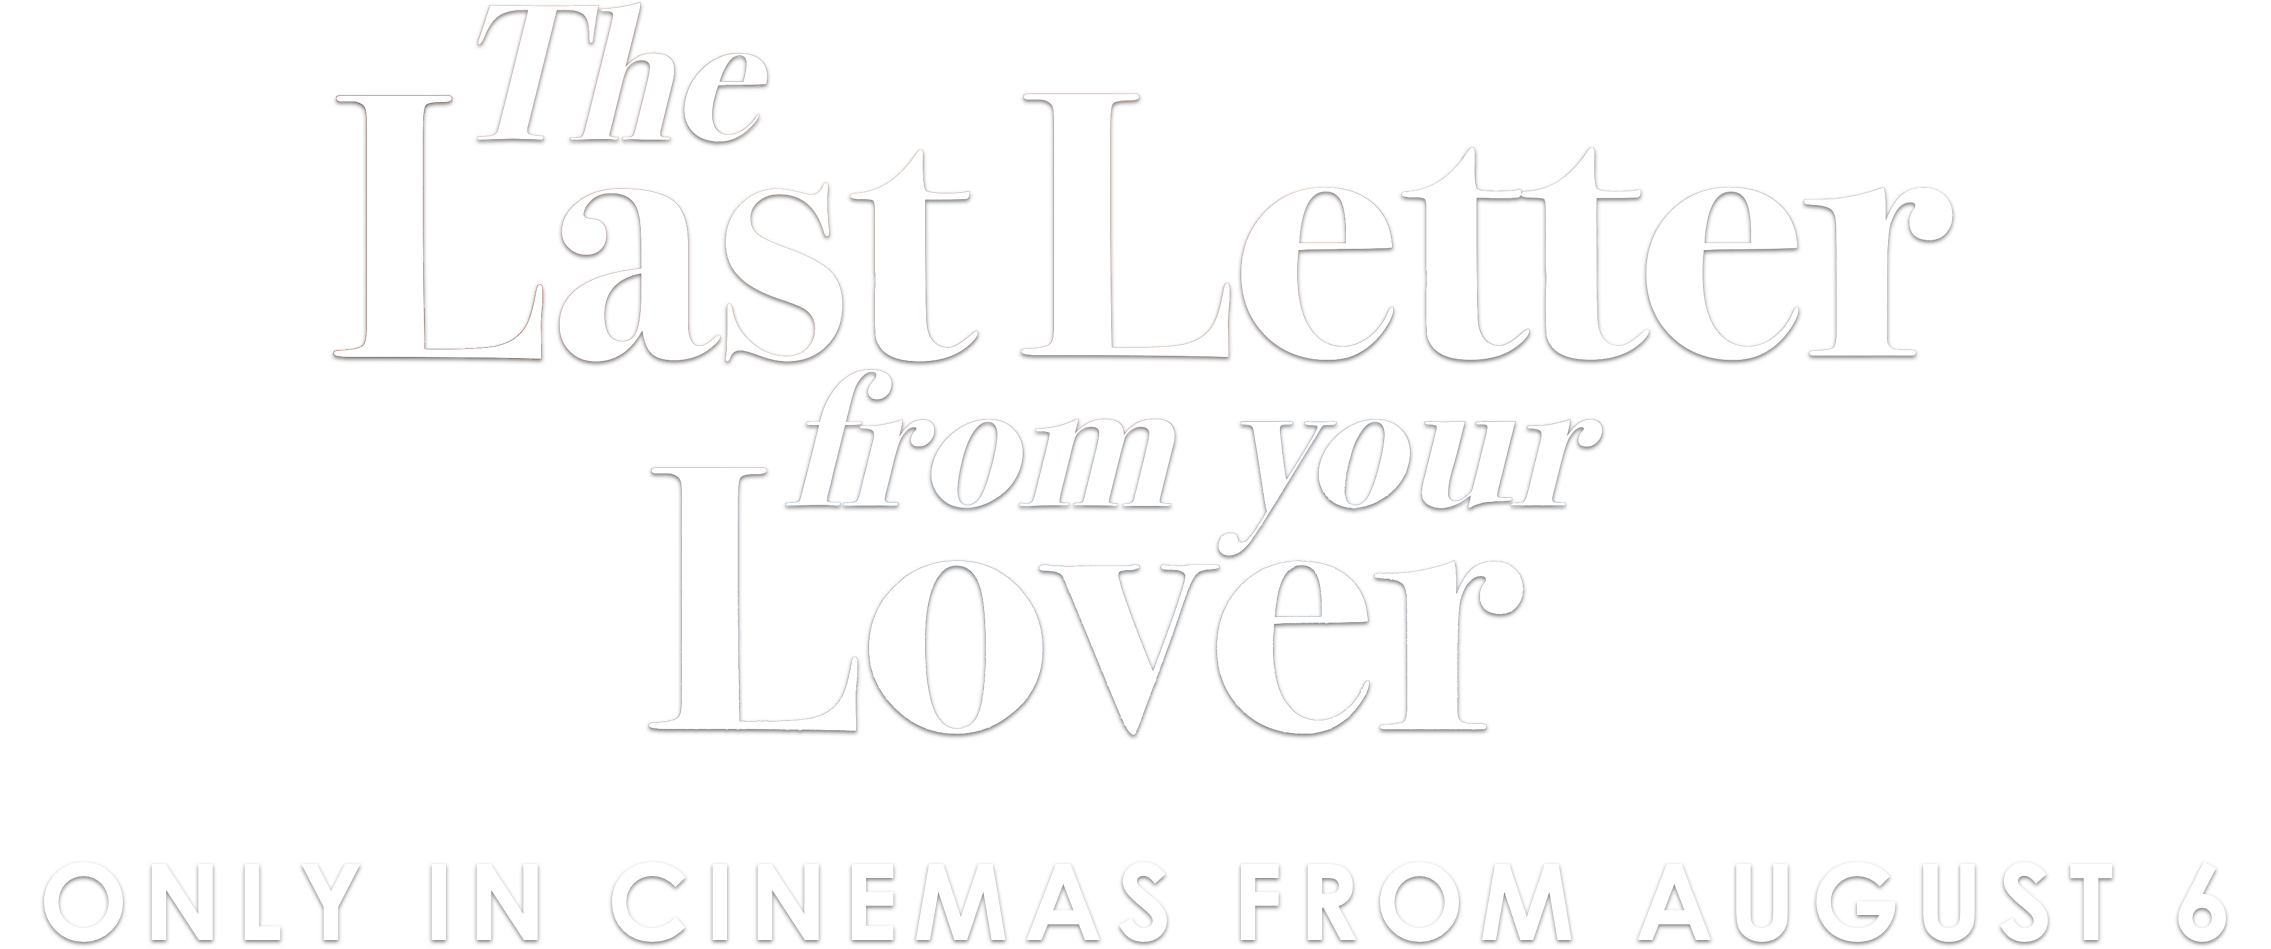 Title or logo for The Last Letter from Your Lover